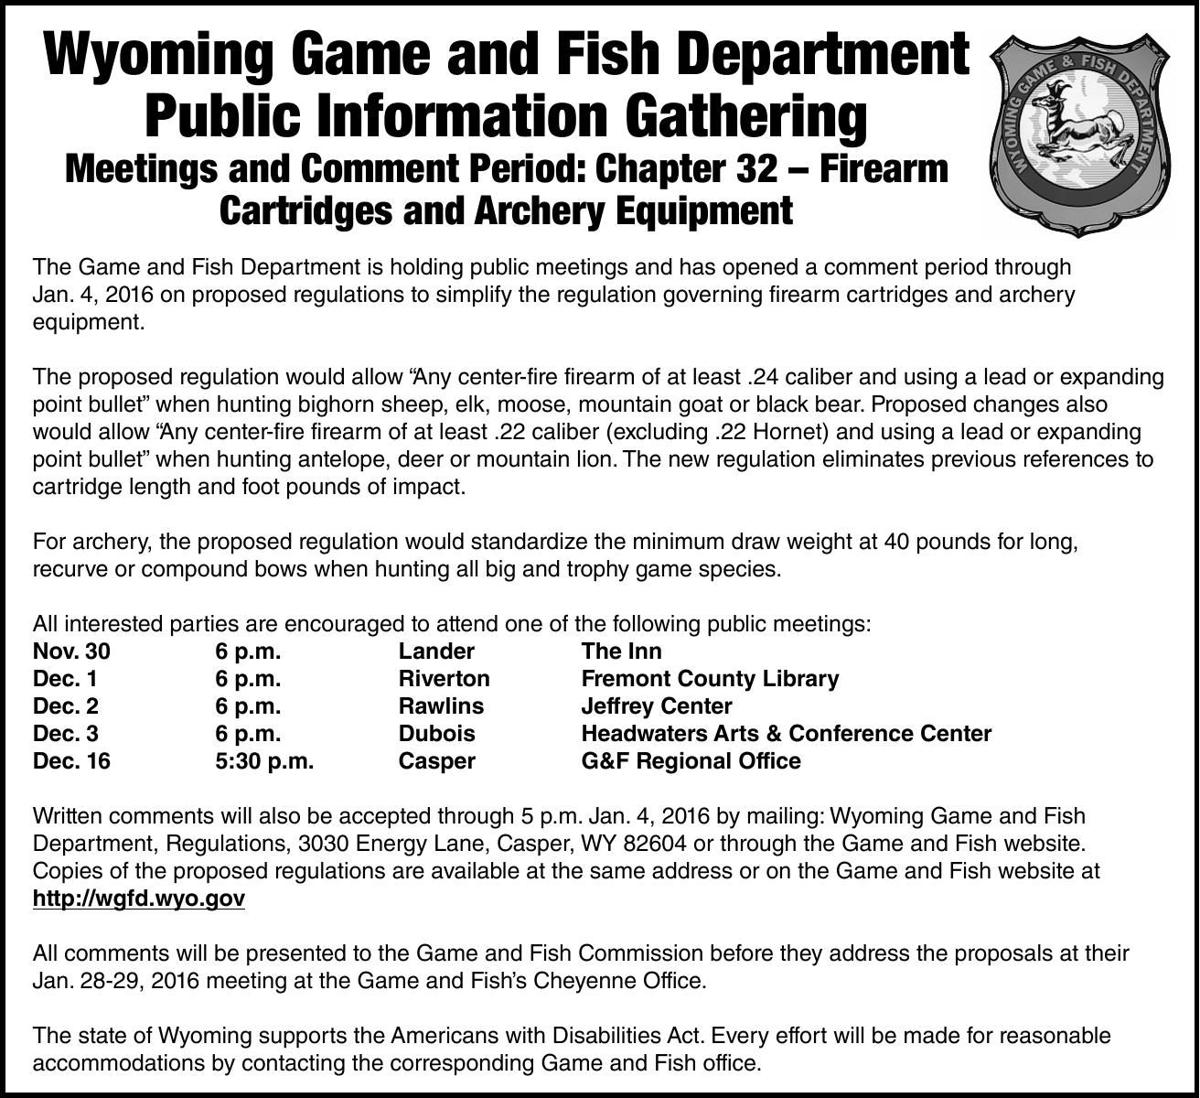 Fred m eiserman obituaries for Wyoming game and fish